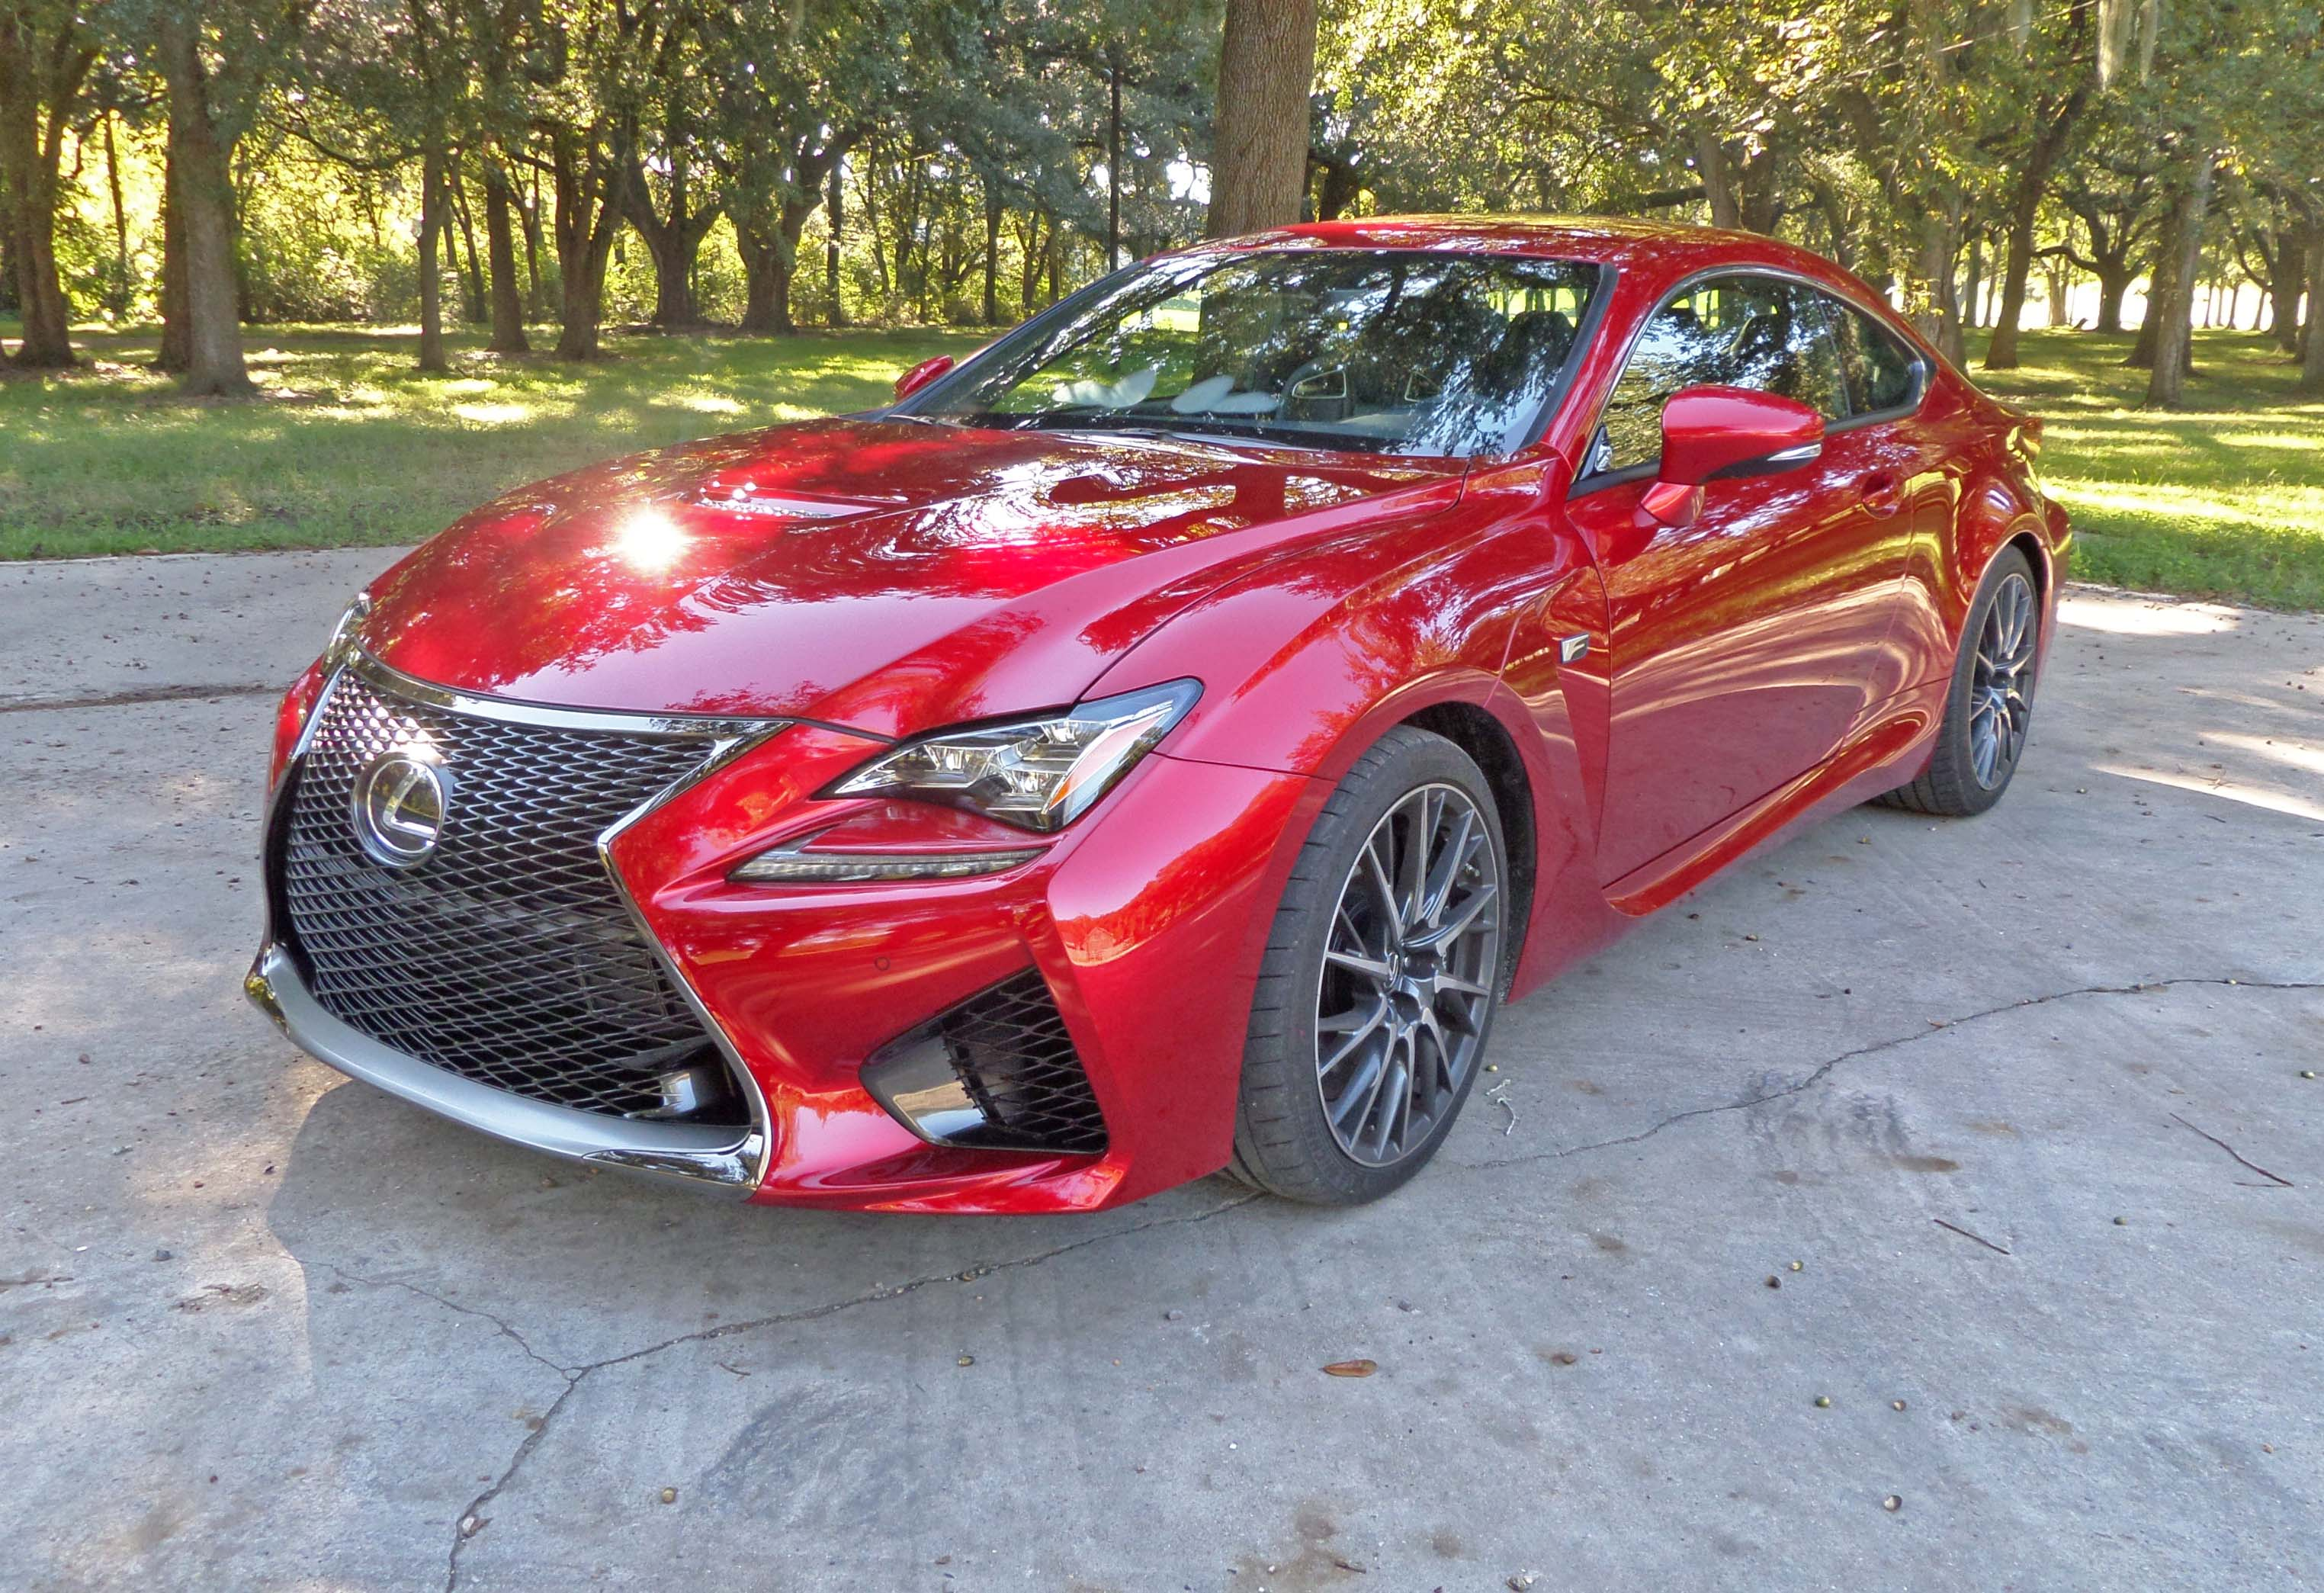 2015 Lexus RC350 F-Sport and Lexus RC F Coupe Test Drives ...